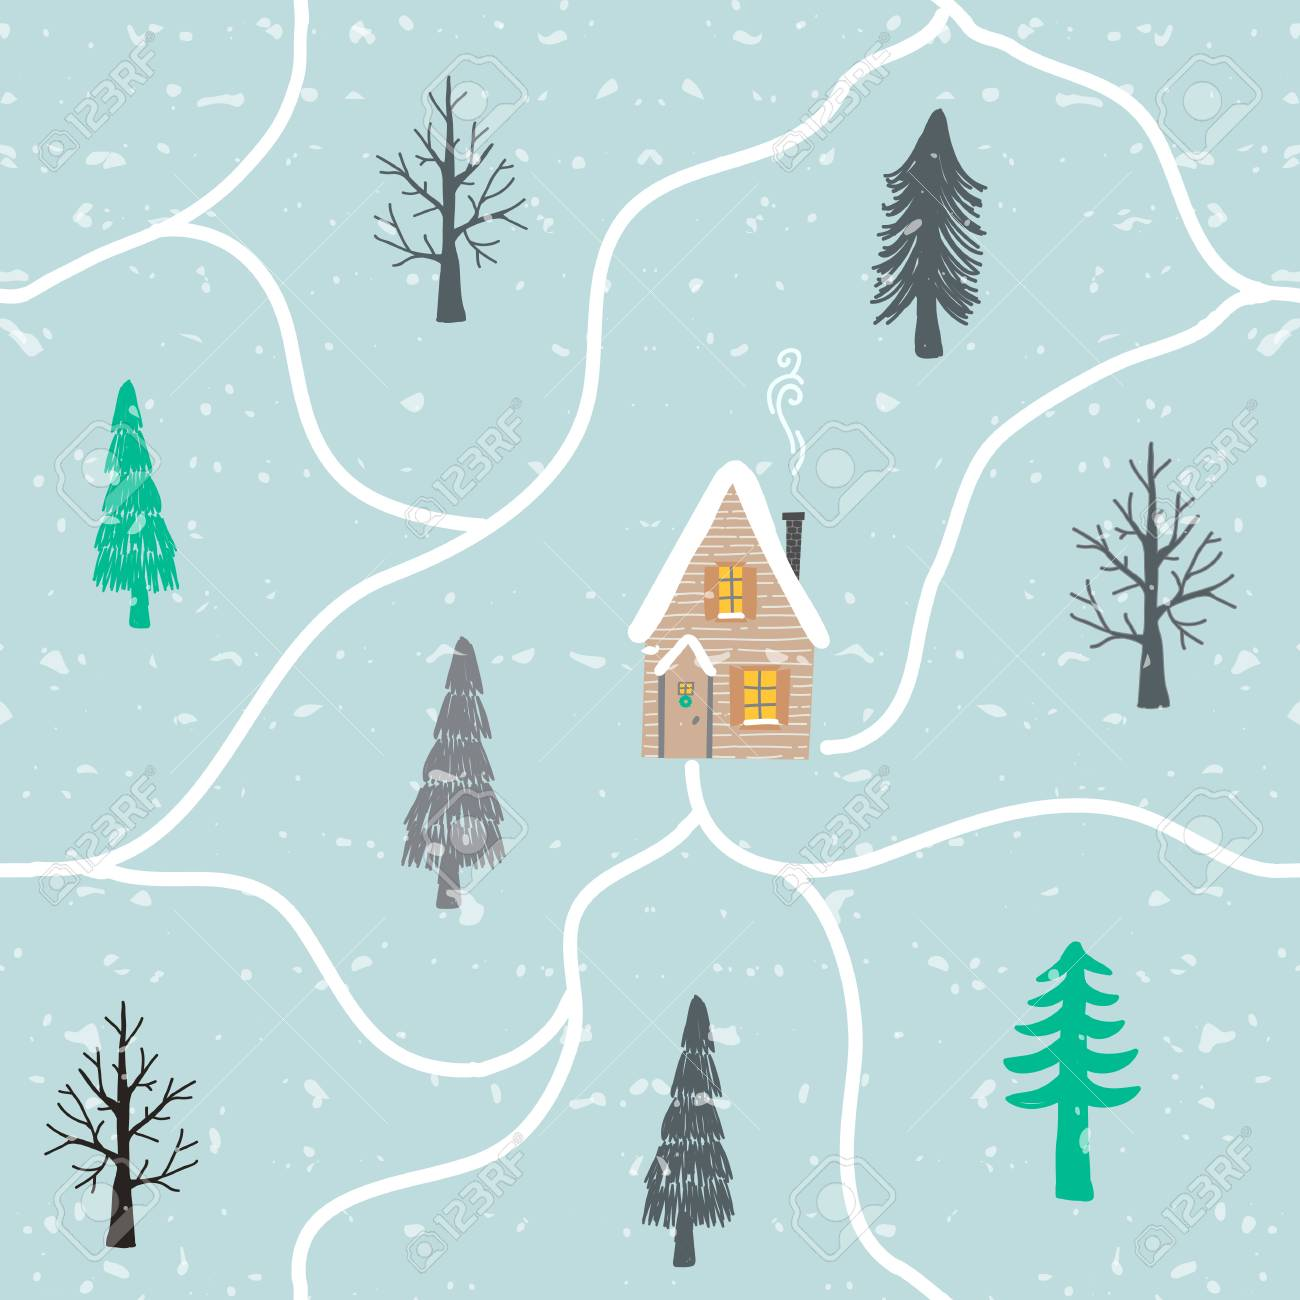 Seamless Winter Hand Drawn Pattern With Snow Christmas Trees Royalty Free Cliparts Vectors And Stock Illustration Image 127732166